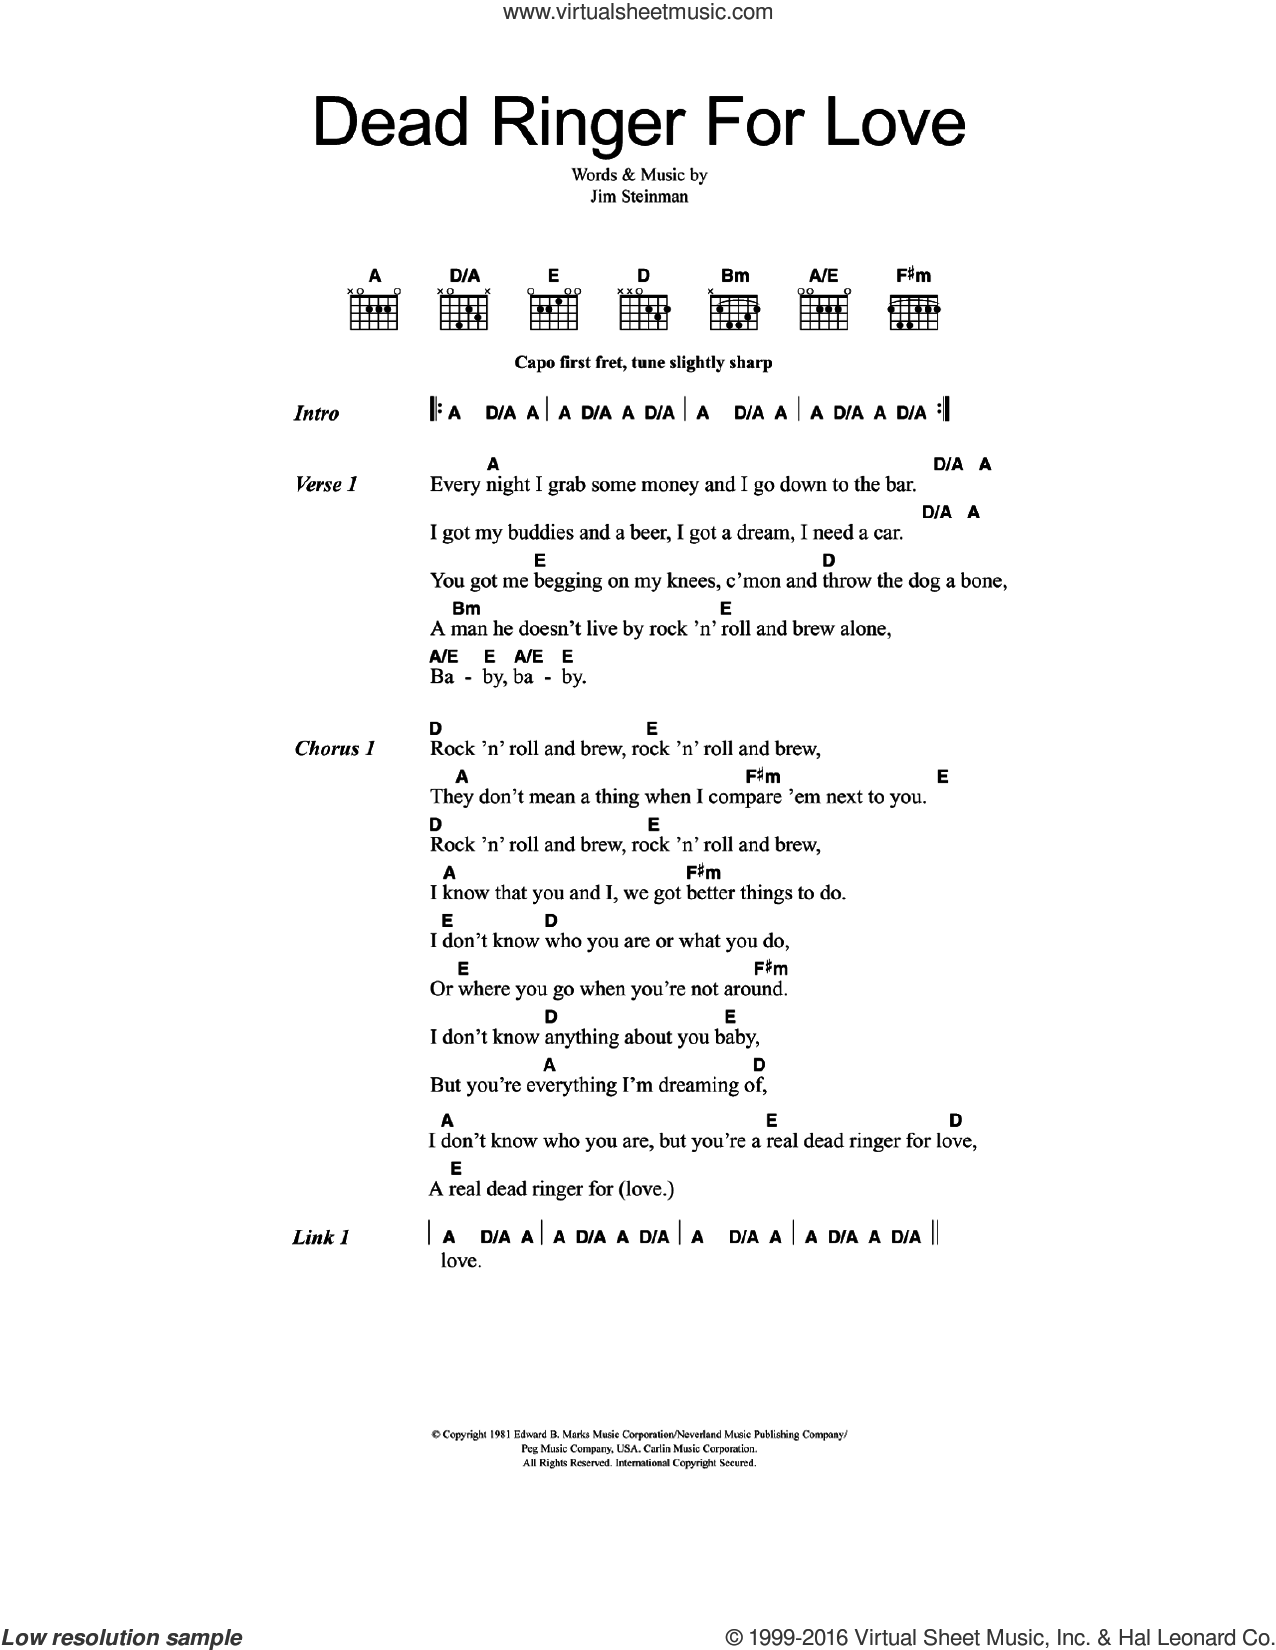 Dead Ringer For Love sheet music for guitar (chords) by Cher, Meat Loaf and Jim Steinman, intermediate skill level